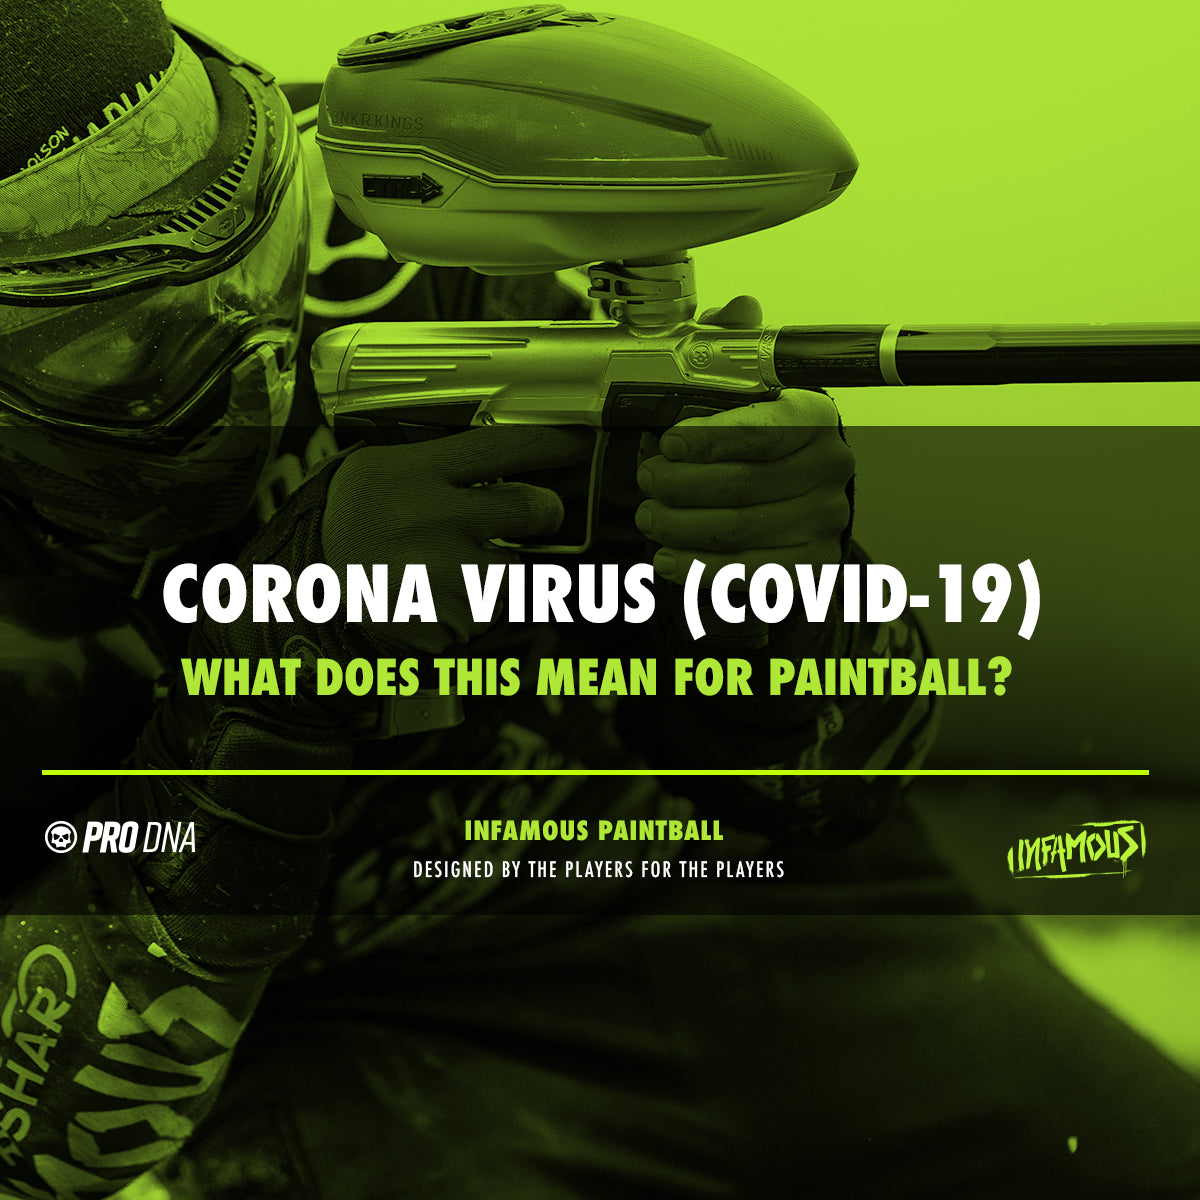 Paintball Corona Virus COVID-19 NXL Infamous Paintball